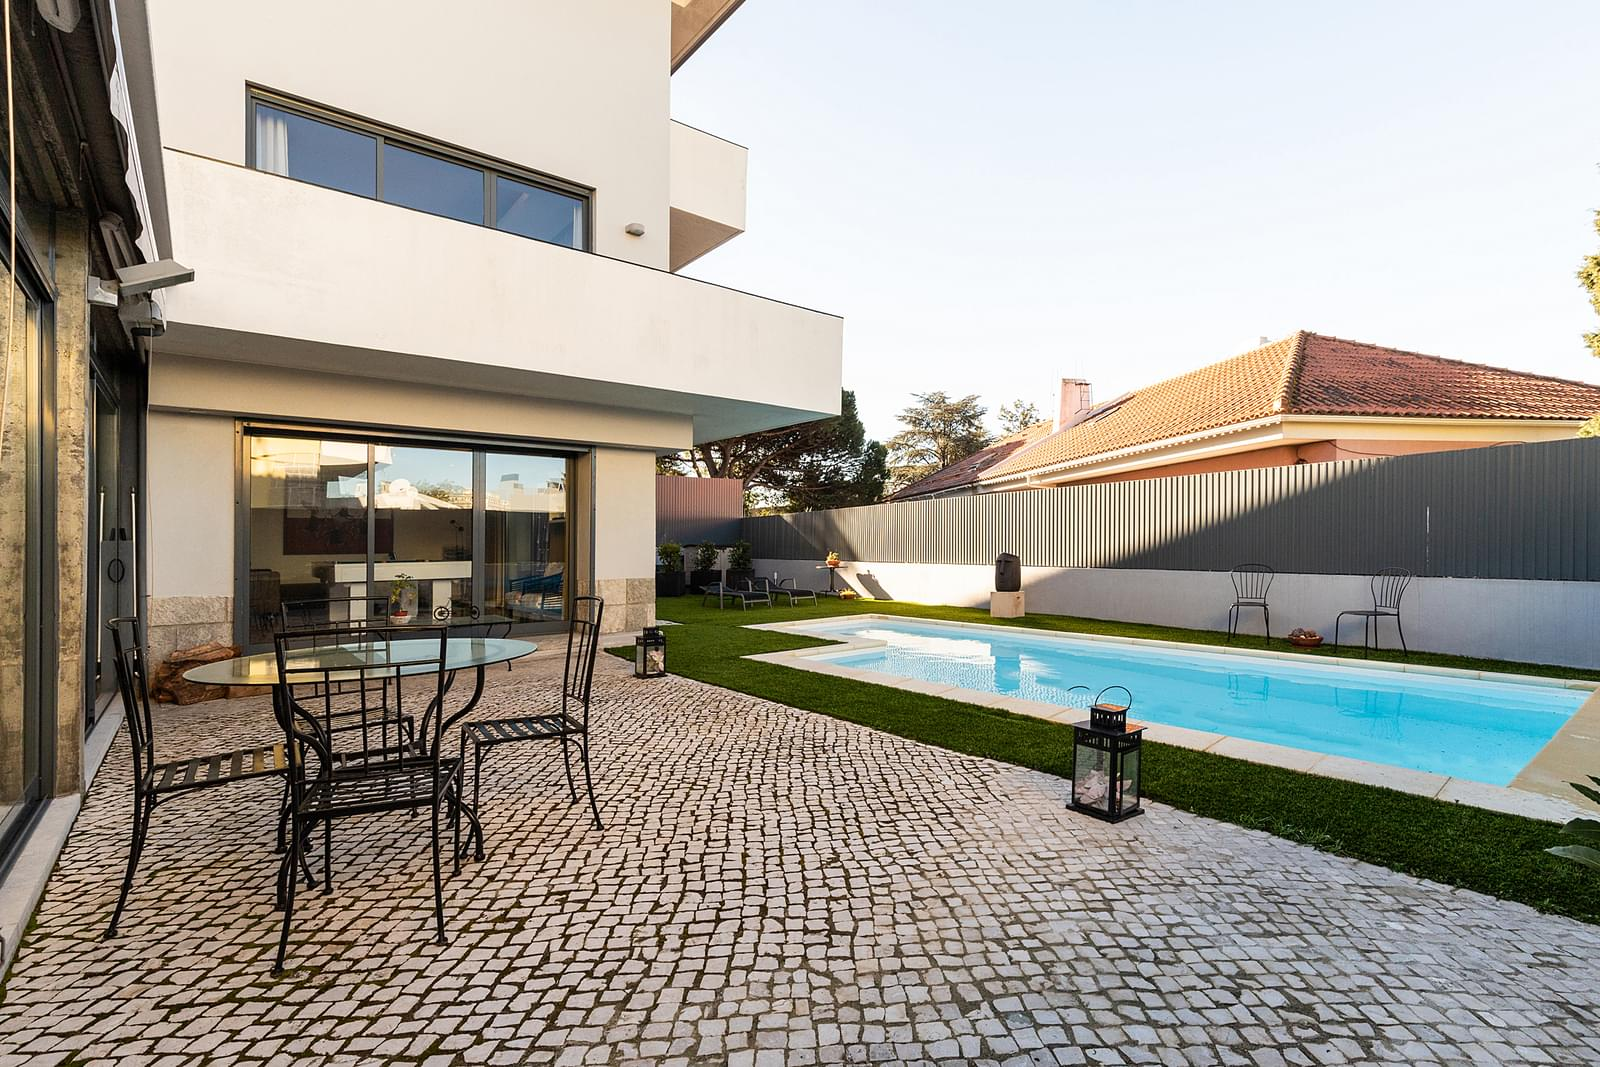 4 bedroom villa with a swimming pool